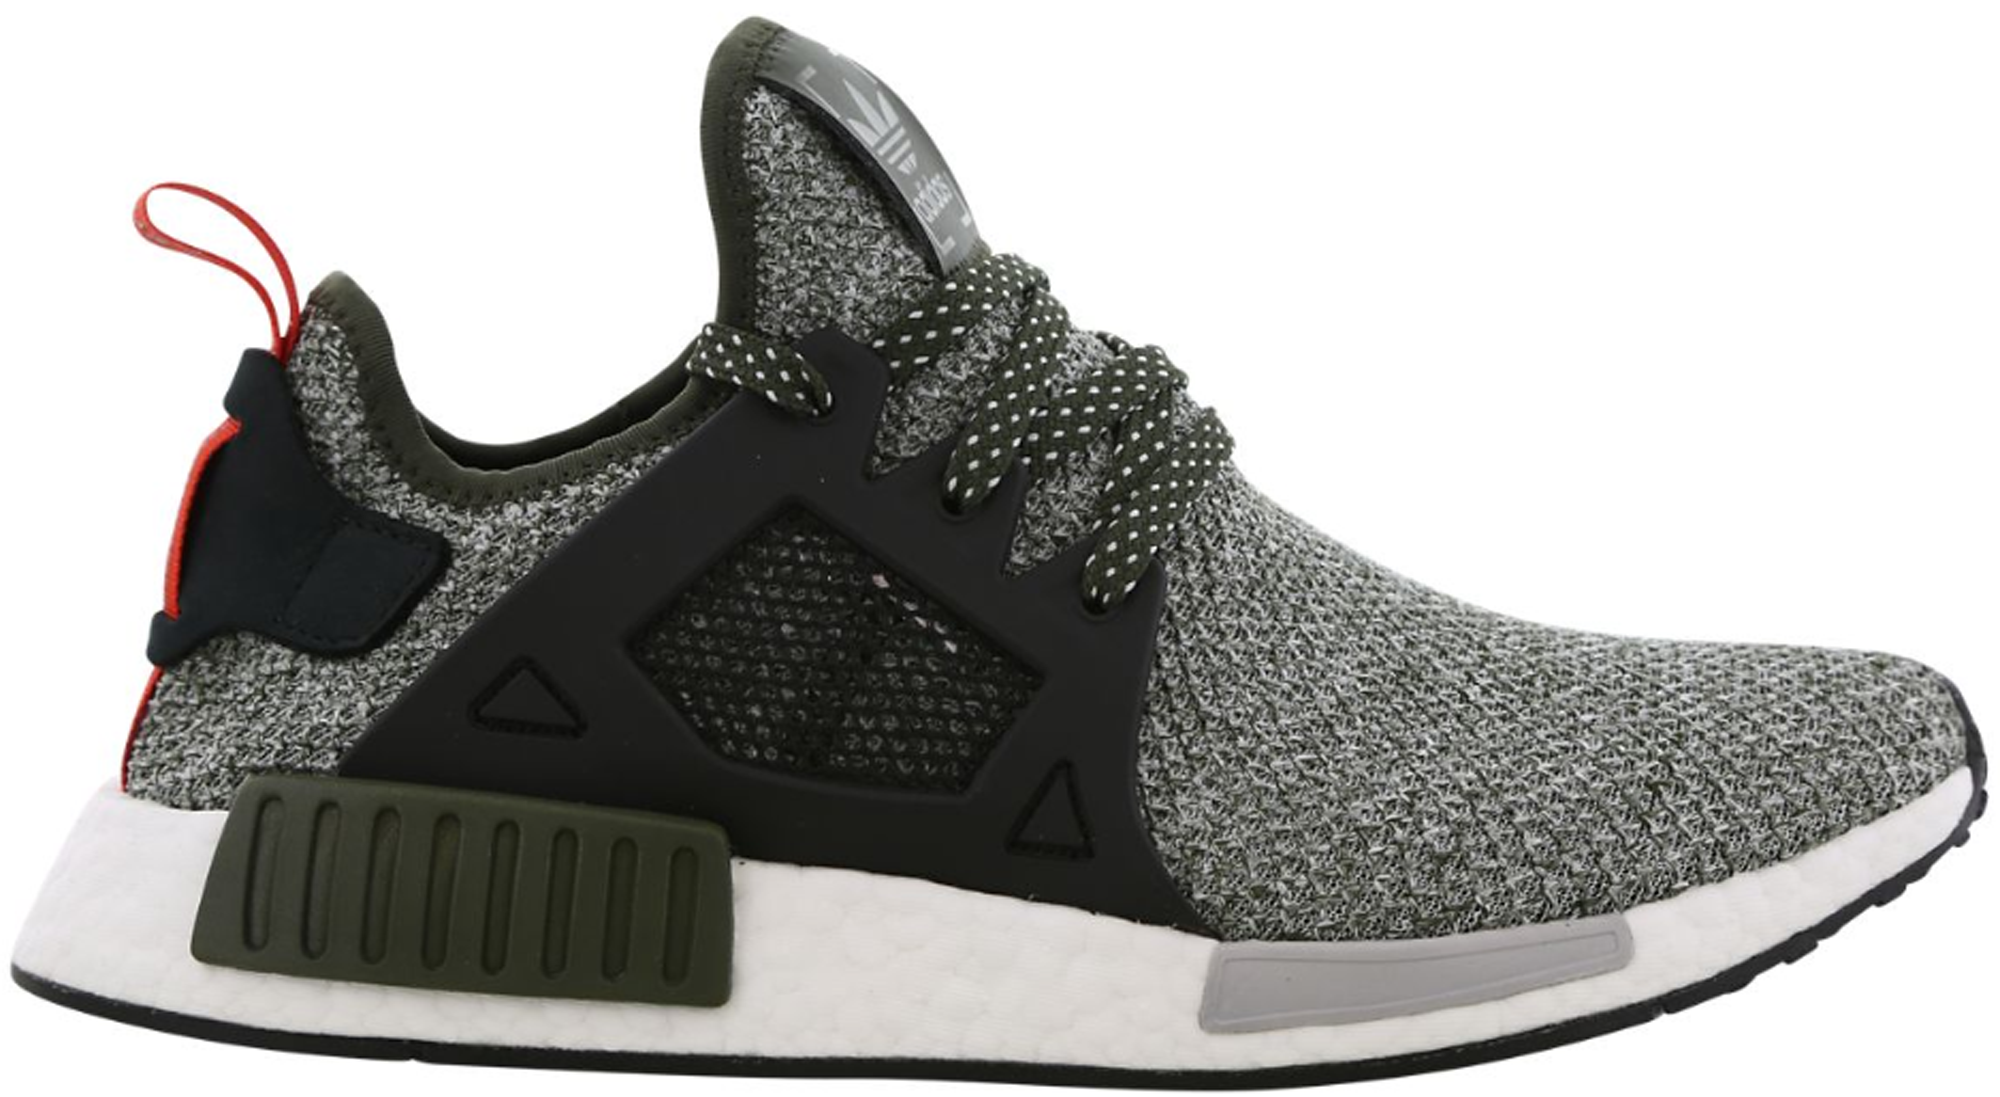 order outlet store sale best loved Adidas Nmd Xr1 Night Cargo in Night Cargo/Core Black/Footwear White